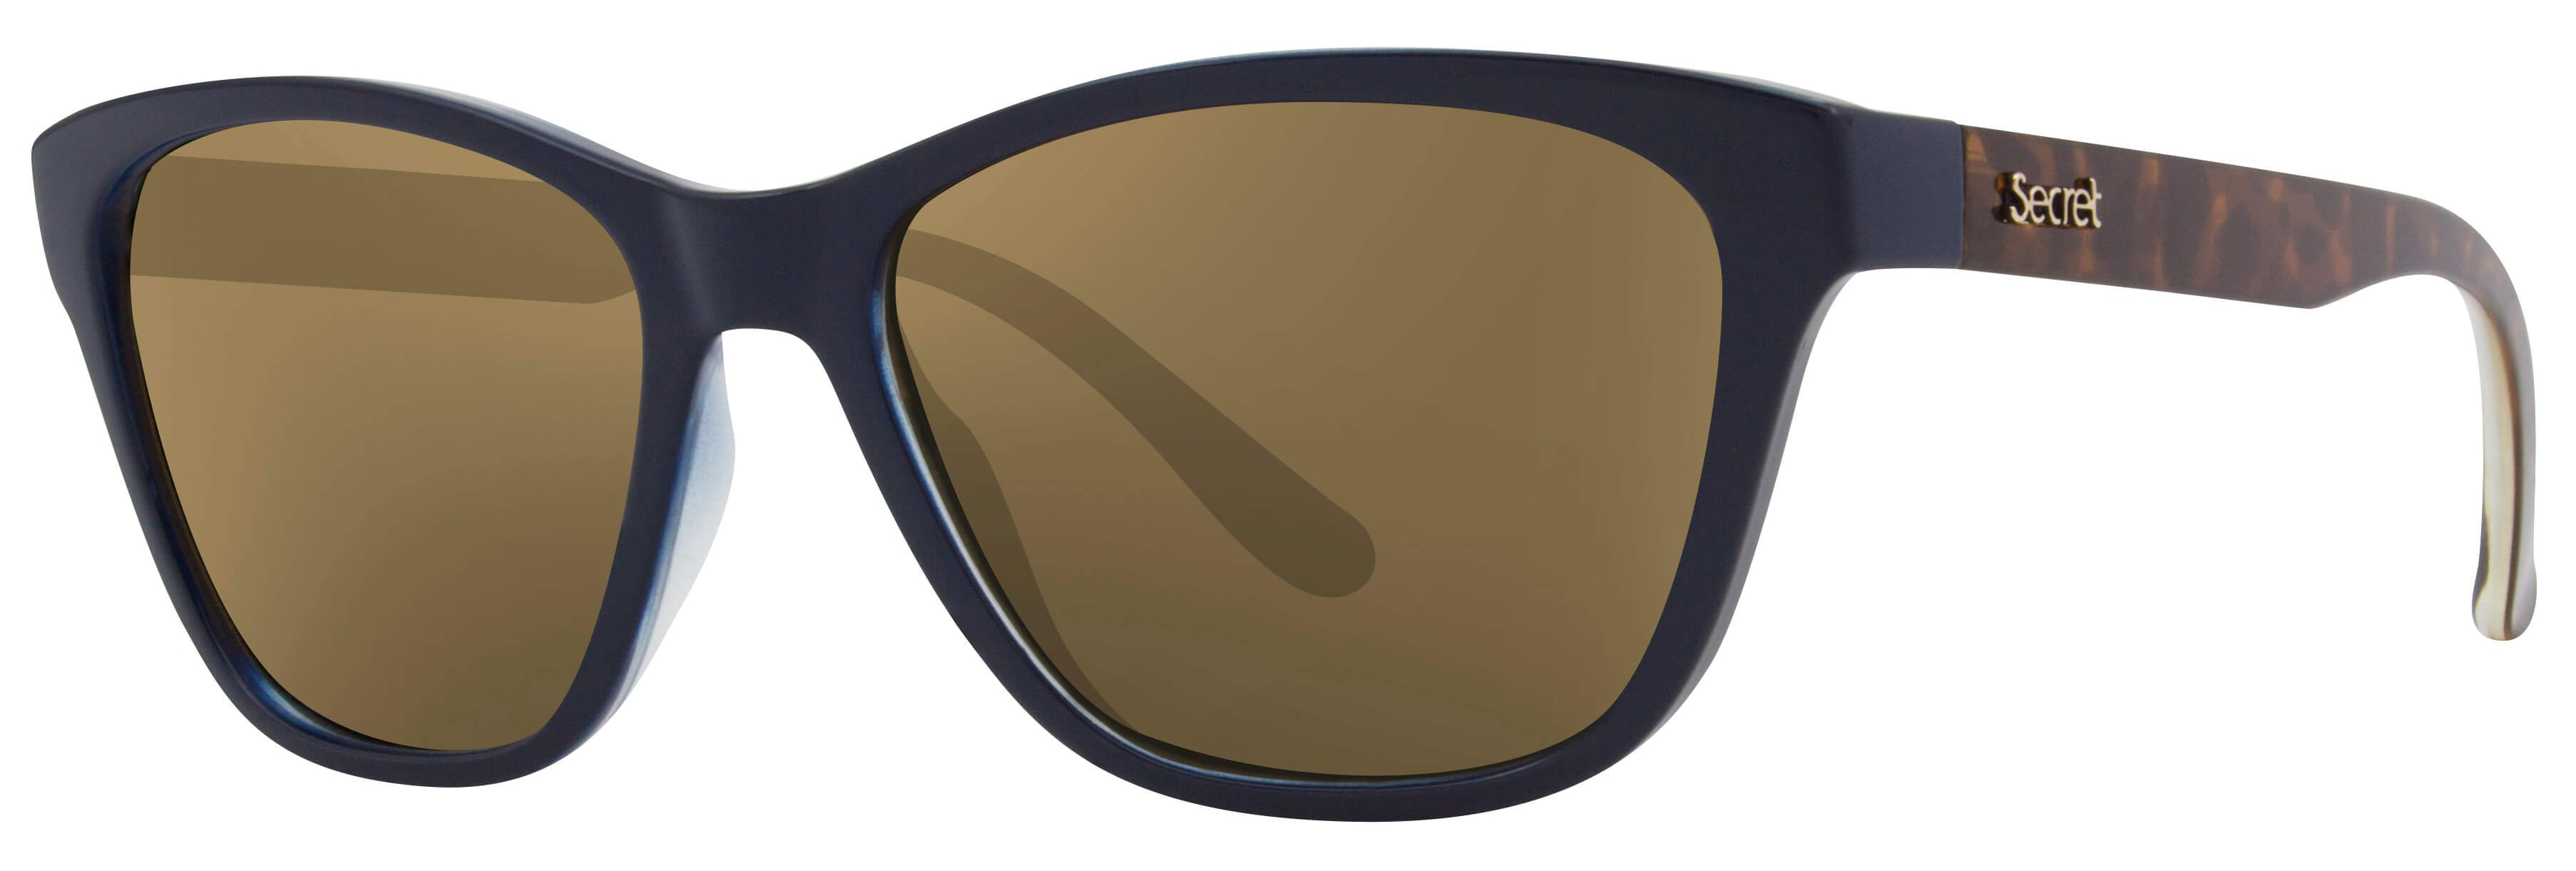 ÓC SECRET NARA NEW BLUE / HAVANA TURTLE / POLARIZED BROWN